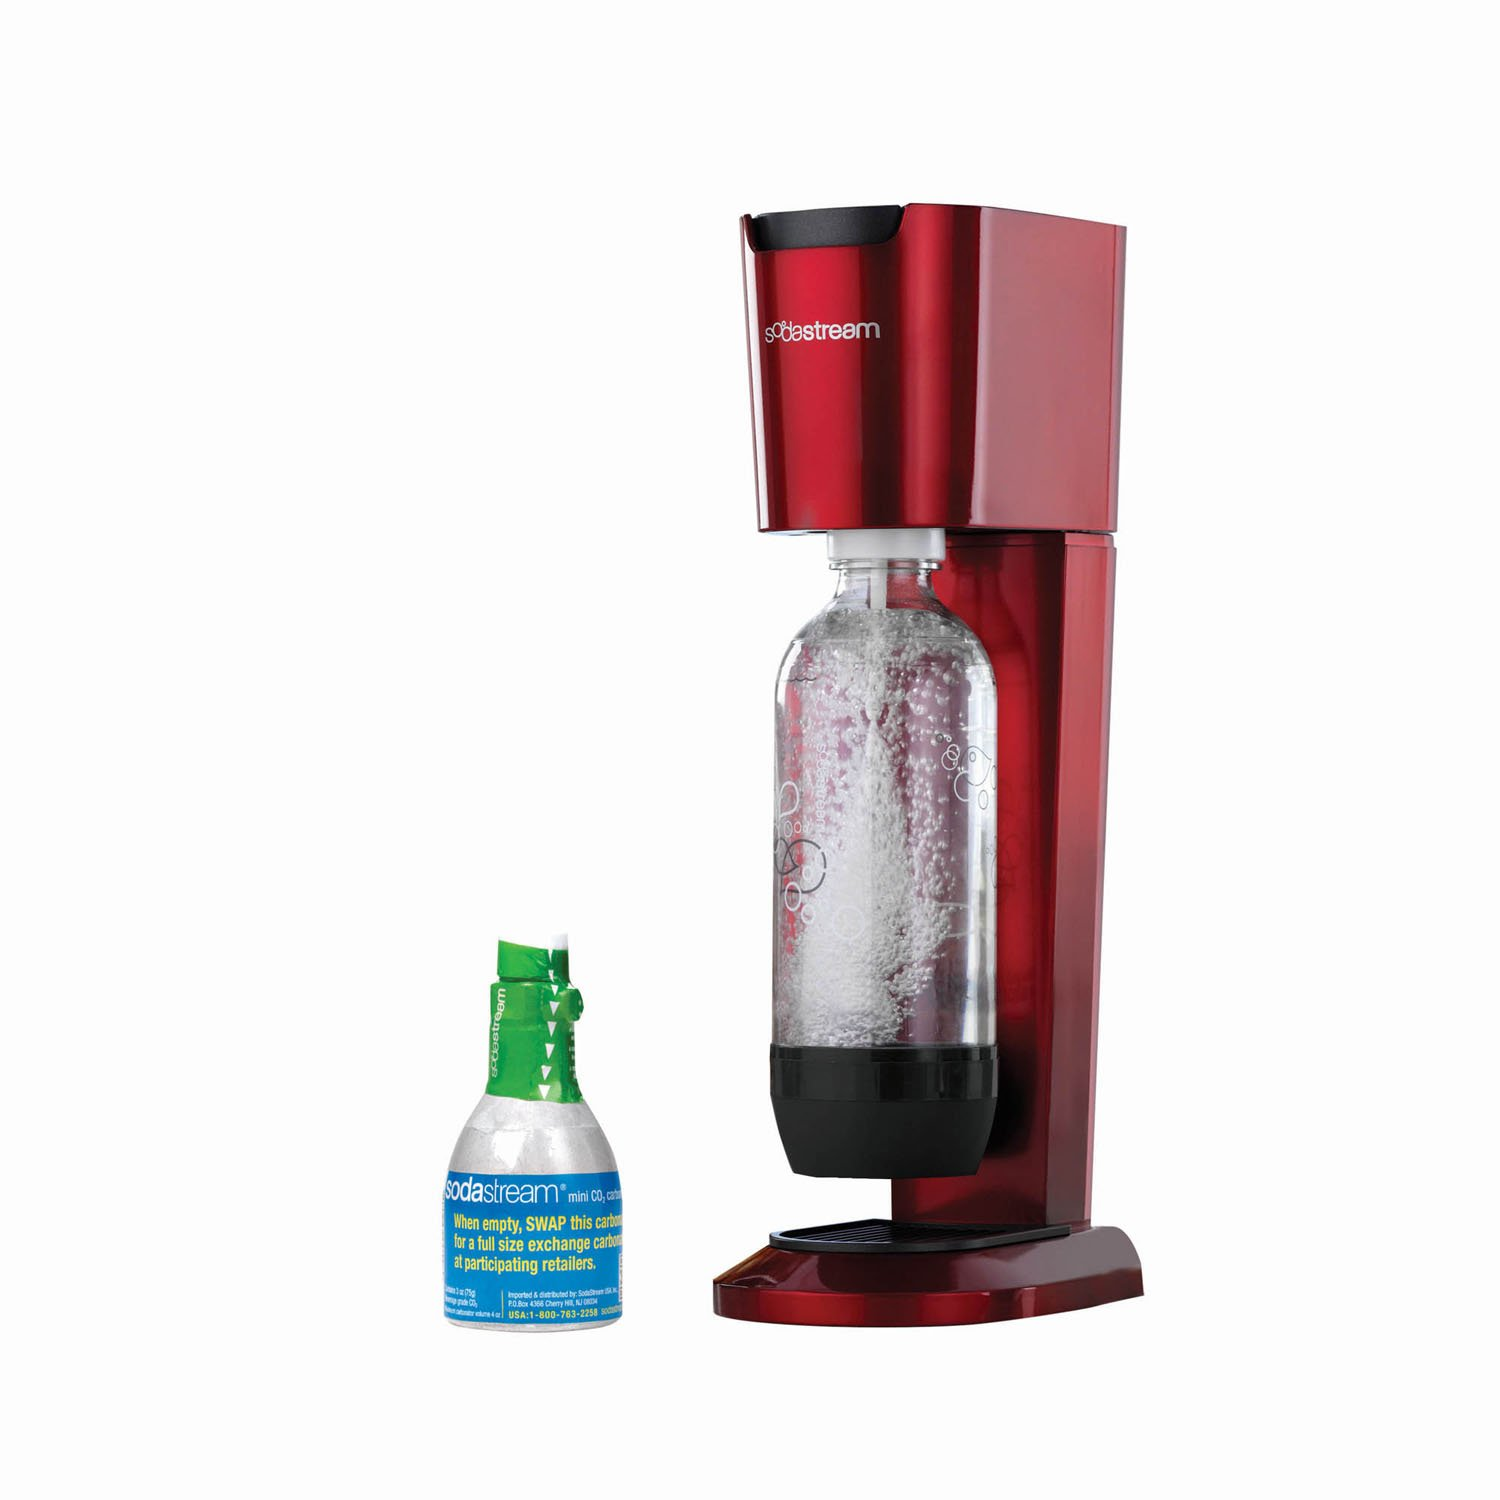 Bed Bath And Beyond Sodastream Exchange Price